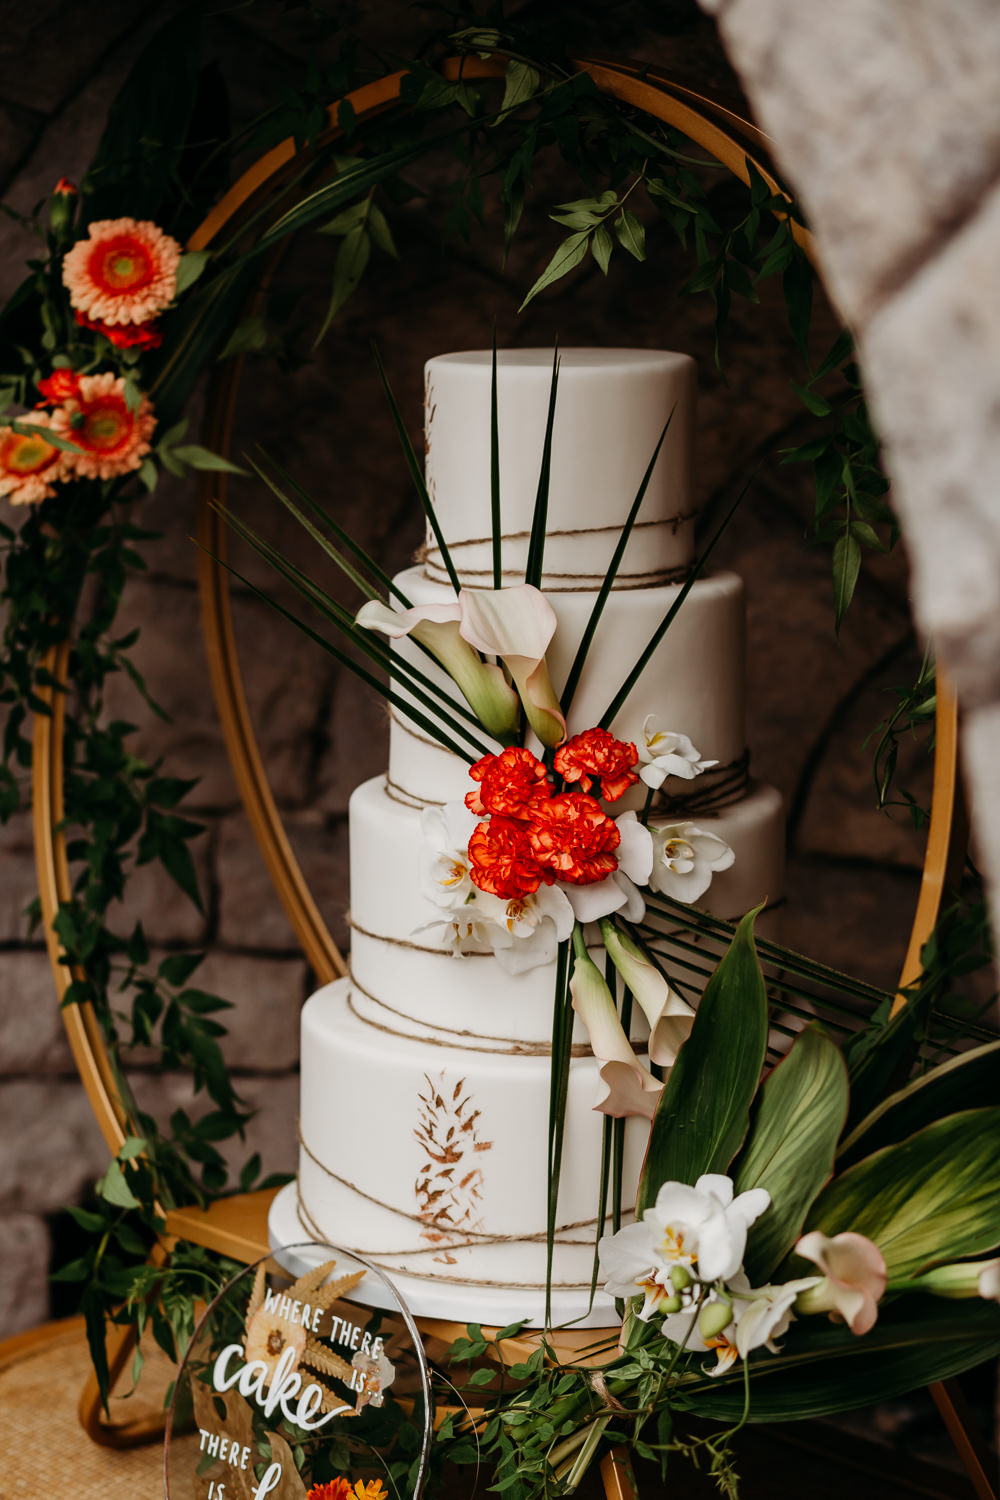 Cake Leaves Twine Pineapples Hoop Tropical Wedding Ideas When Charlie Met Hannah